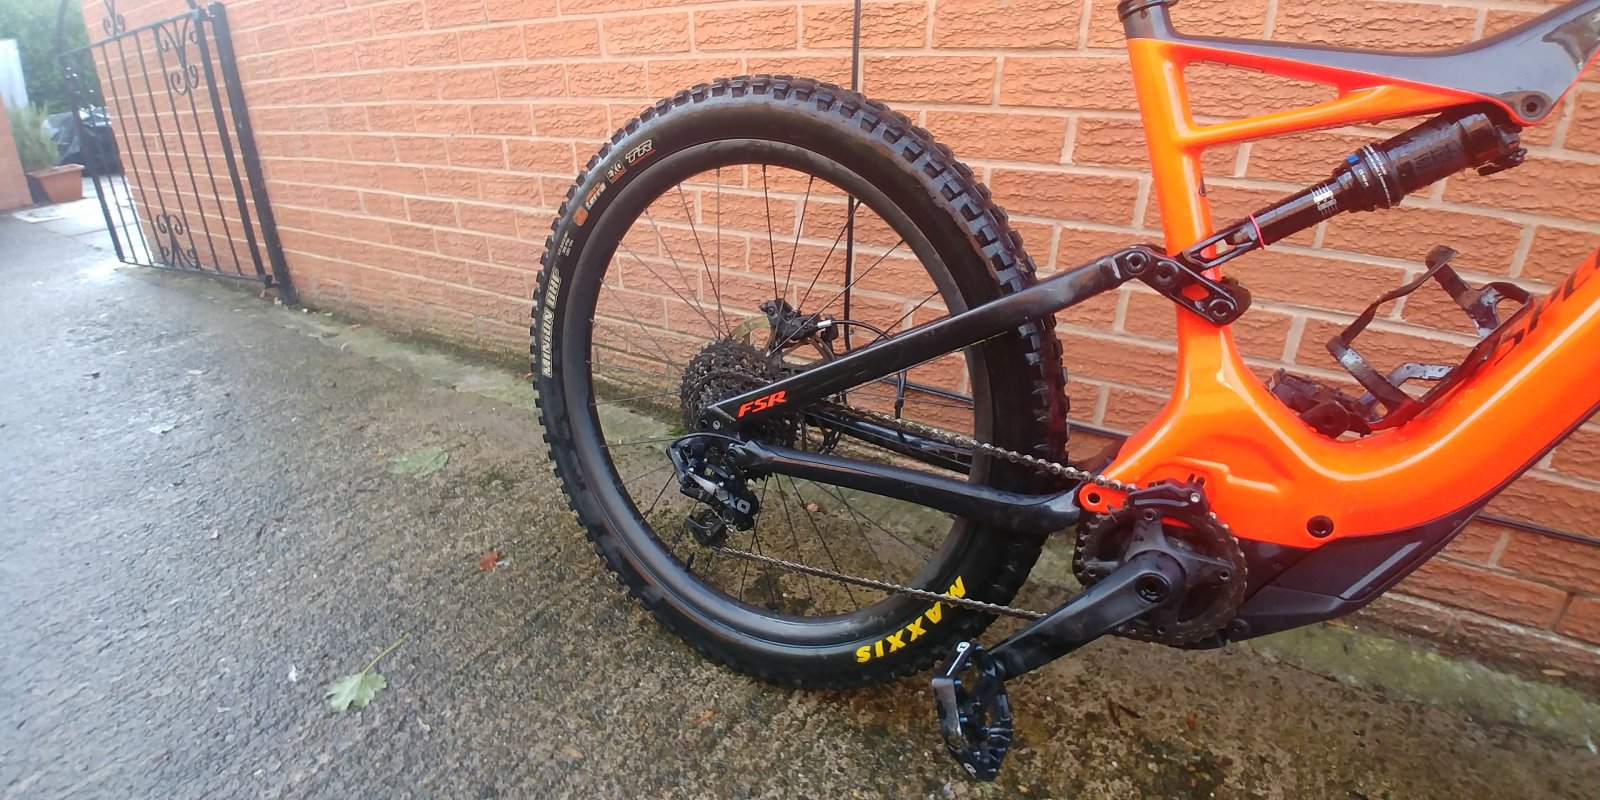 56da88dec7a SOLD 2018 Specialized Turbo Levo FSR Carbon Expert (Large): £3,950 ...